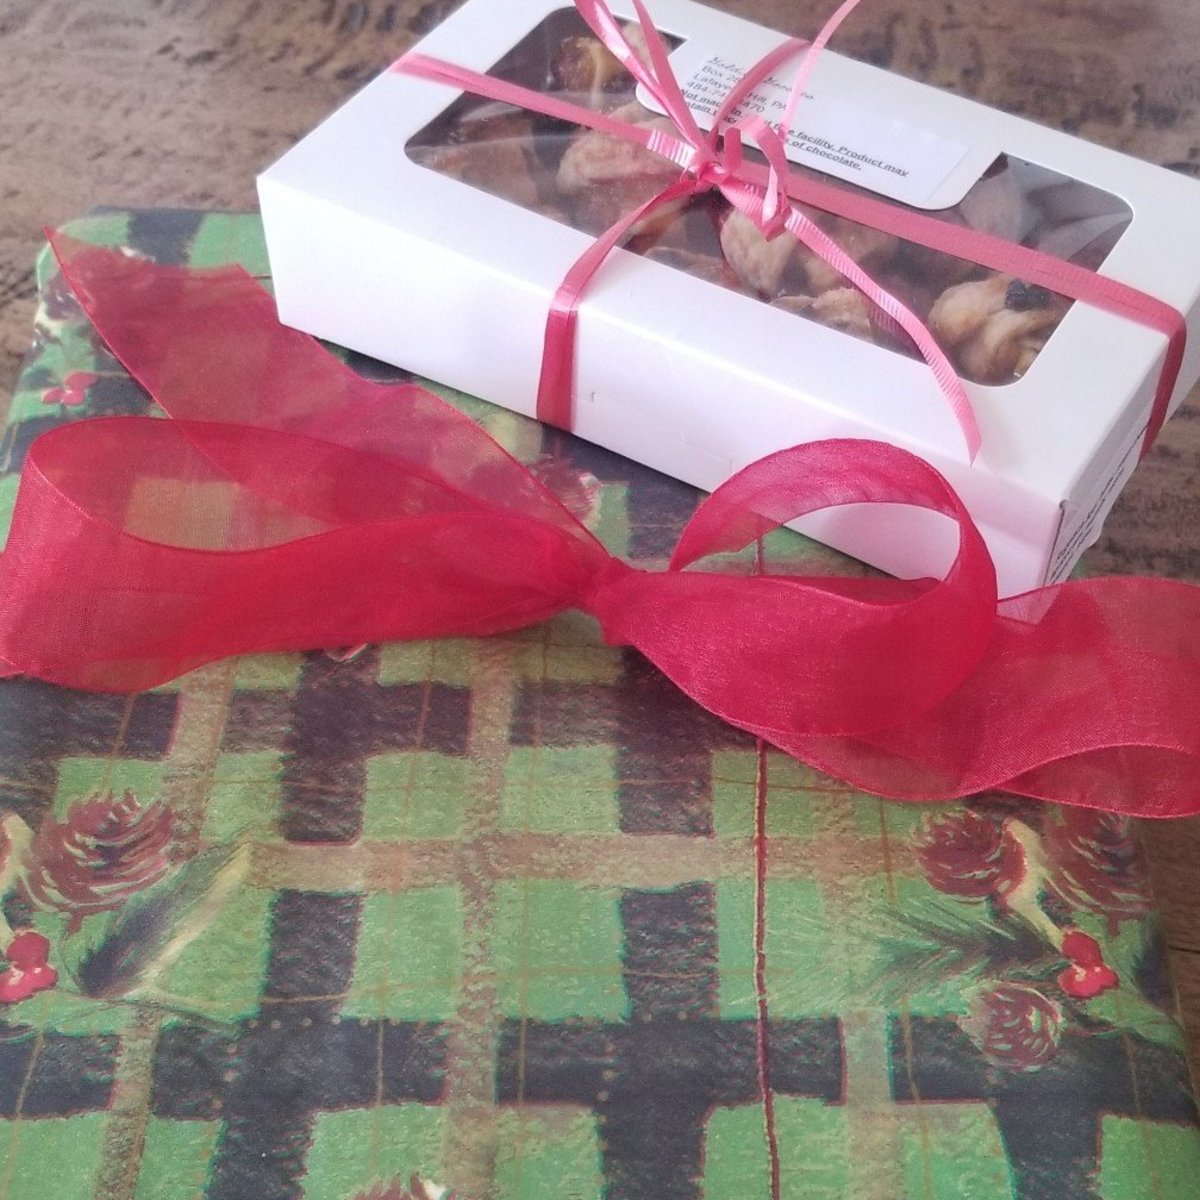 4 Advantages of Using Red Ribbon for Gifts and Decorations